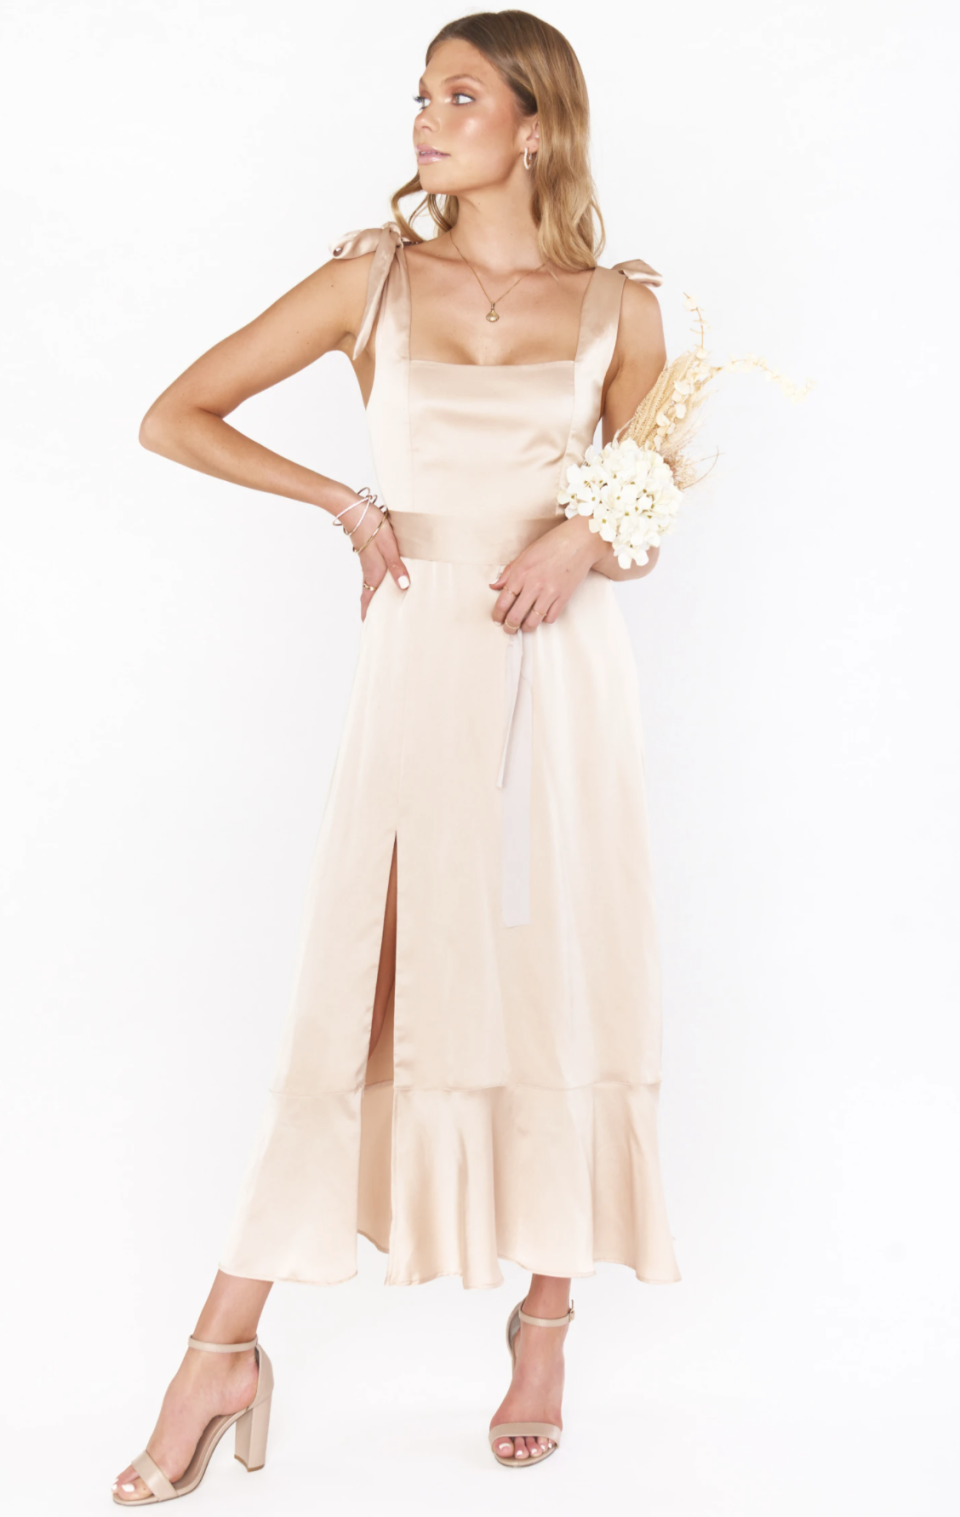 blone model posing with hand on hip in nude silk bridesmaids dress holding bouquet of flowers